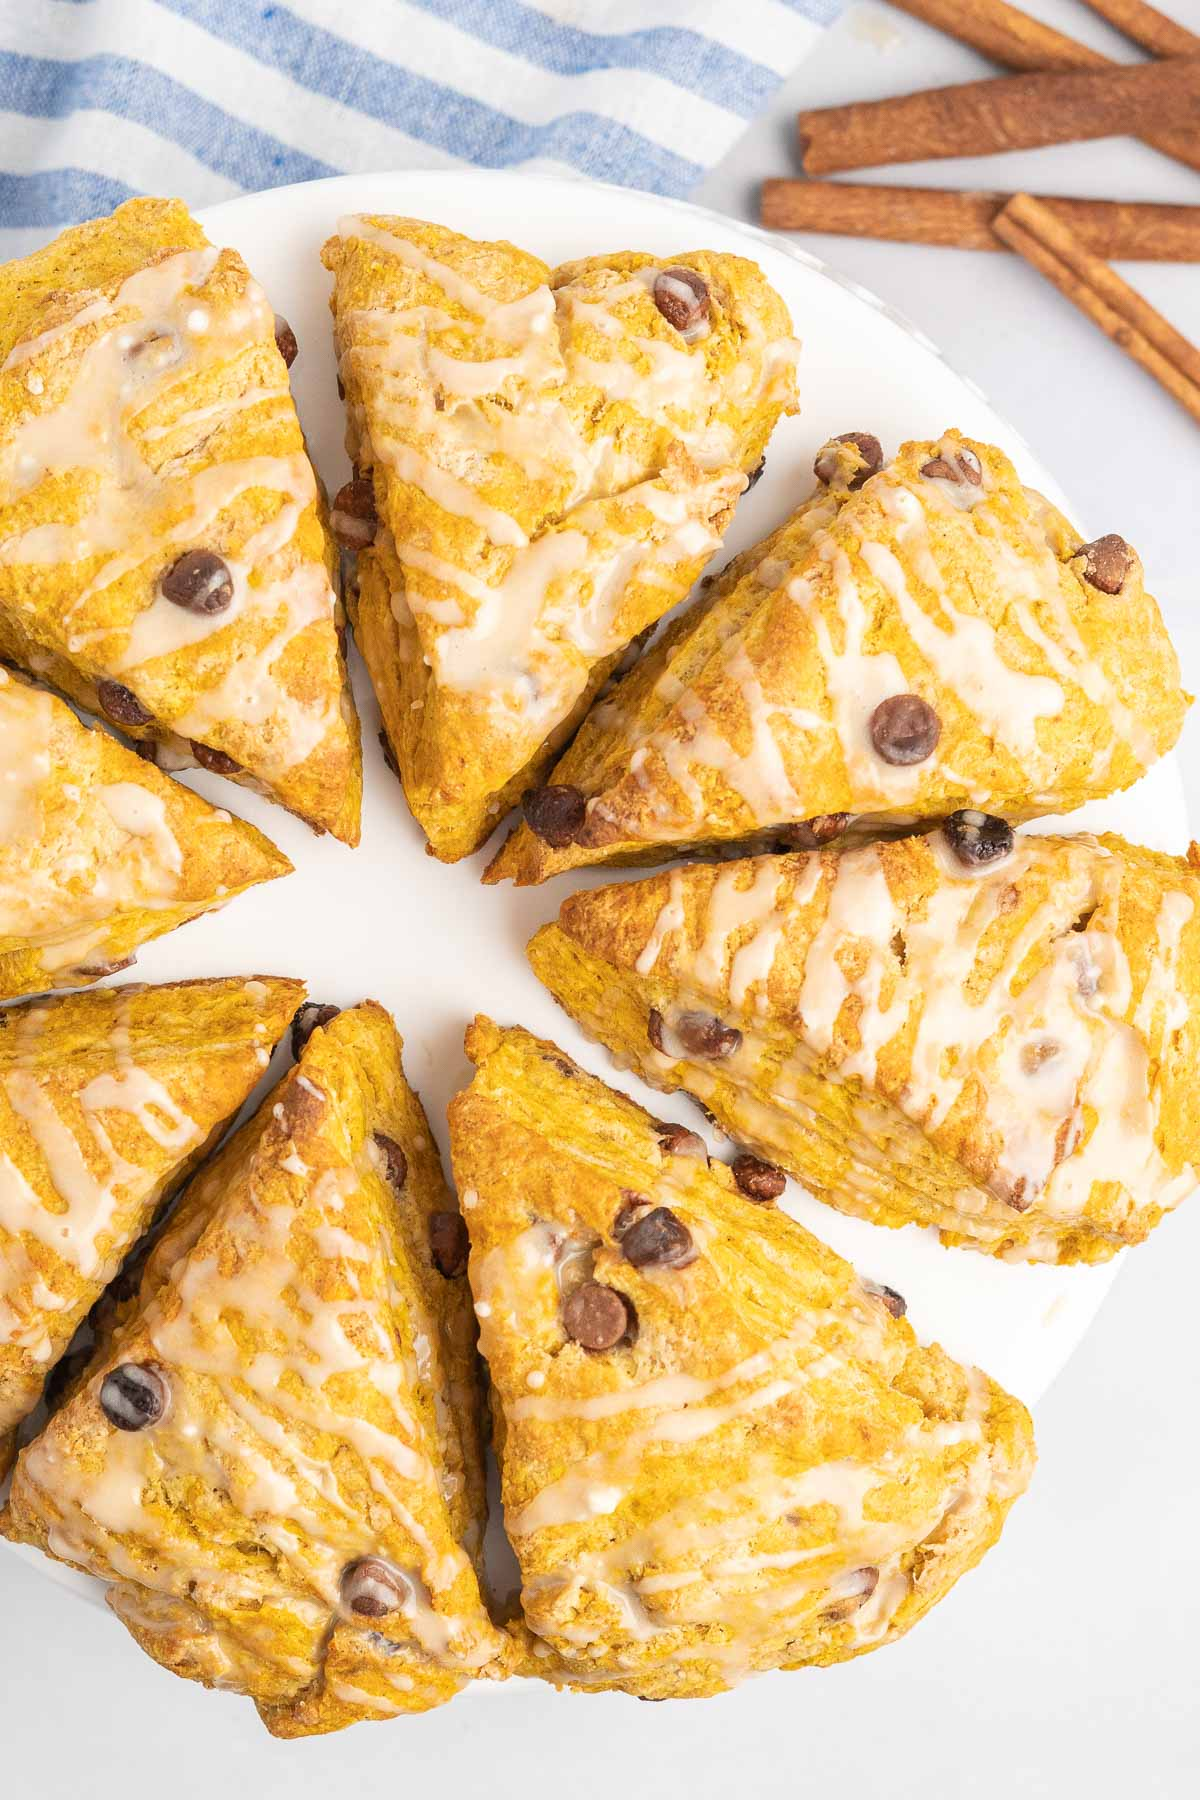 Pumpkin scones with icing drizzle on a serving plate.